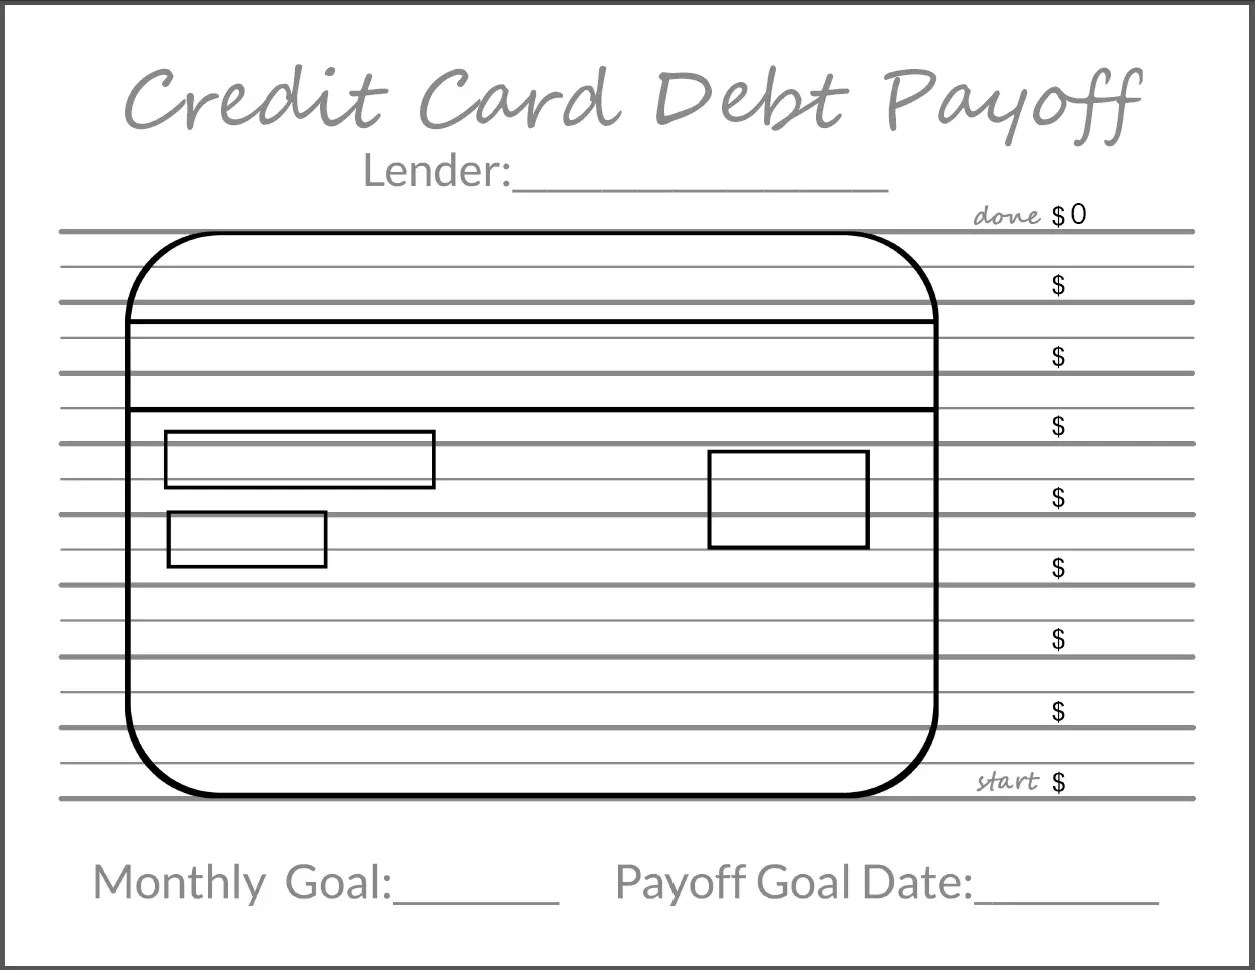 Credit Card Debt Payoff Tracker